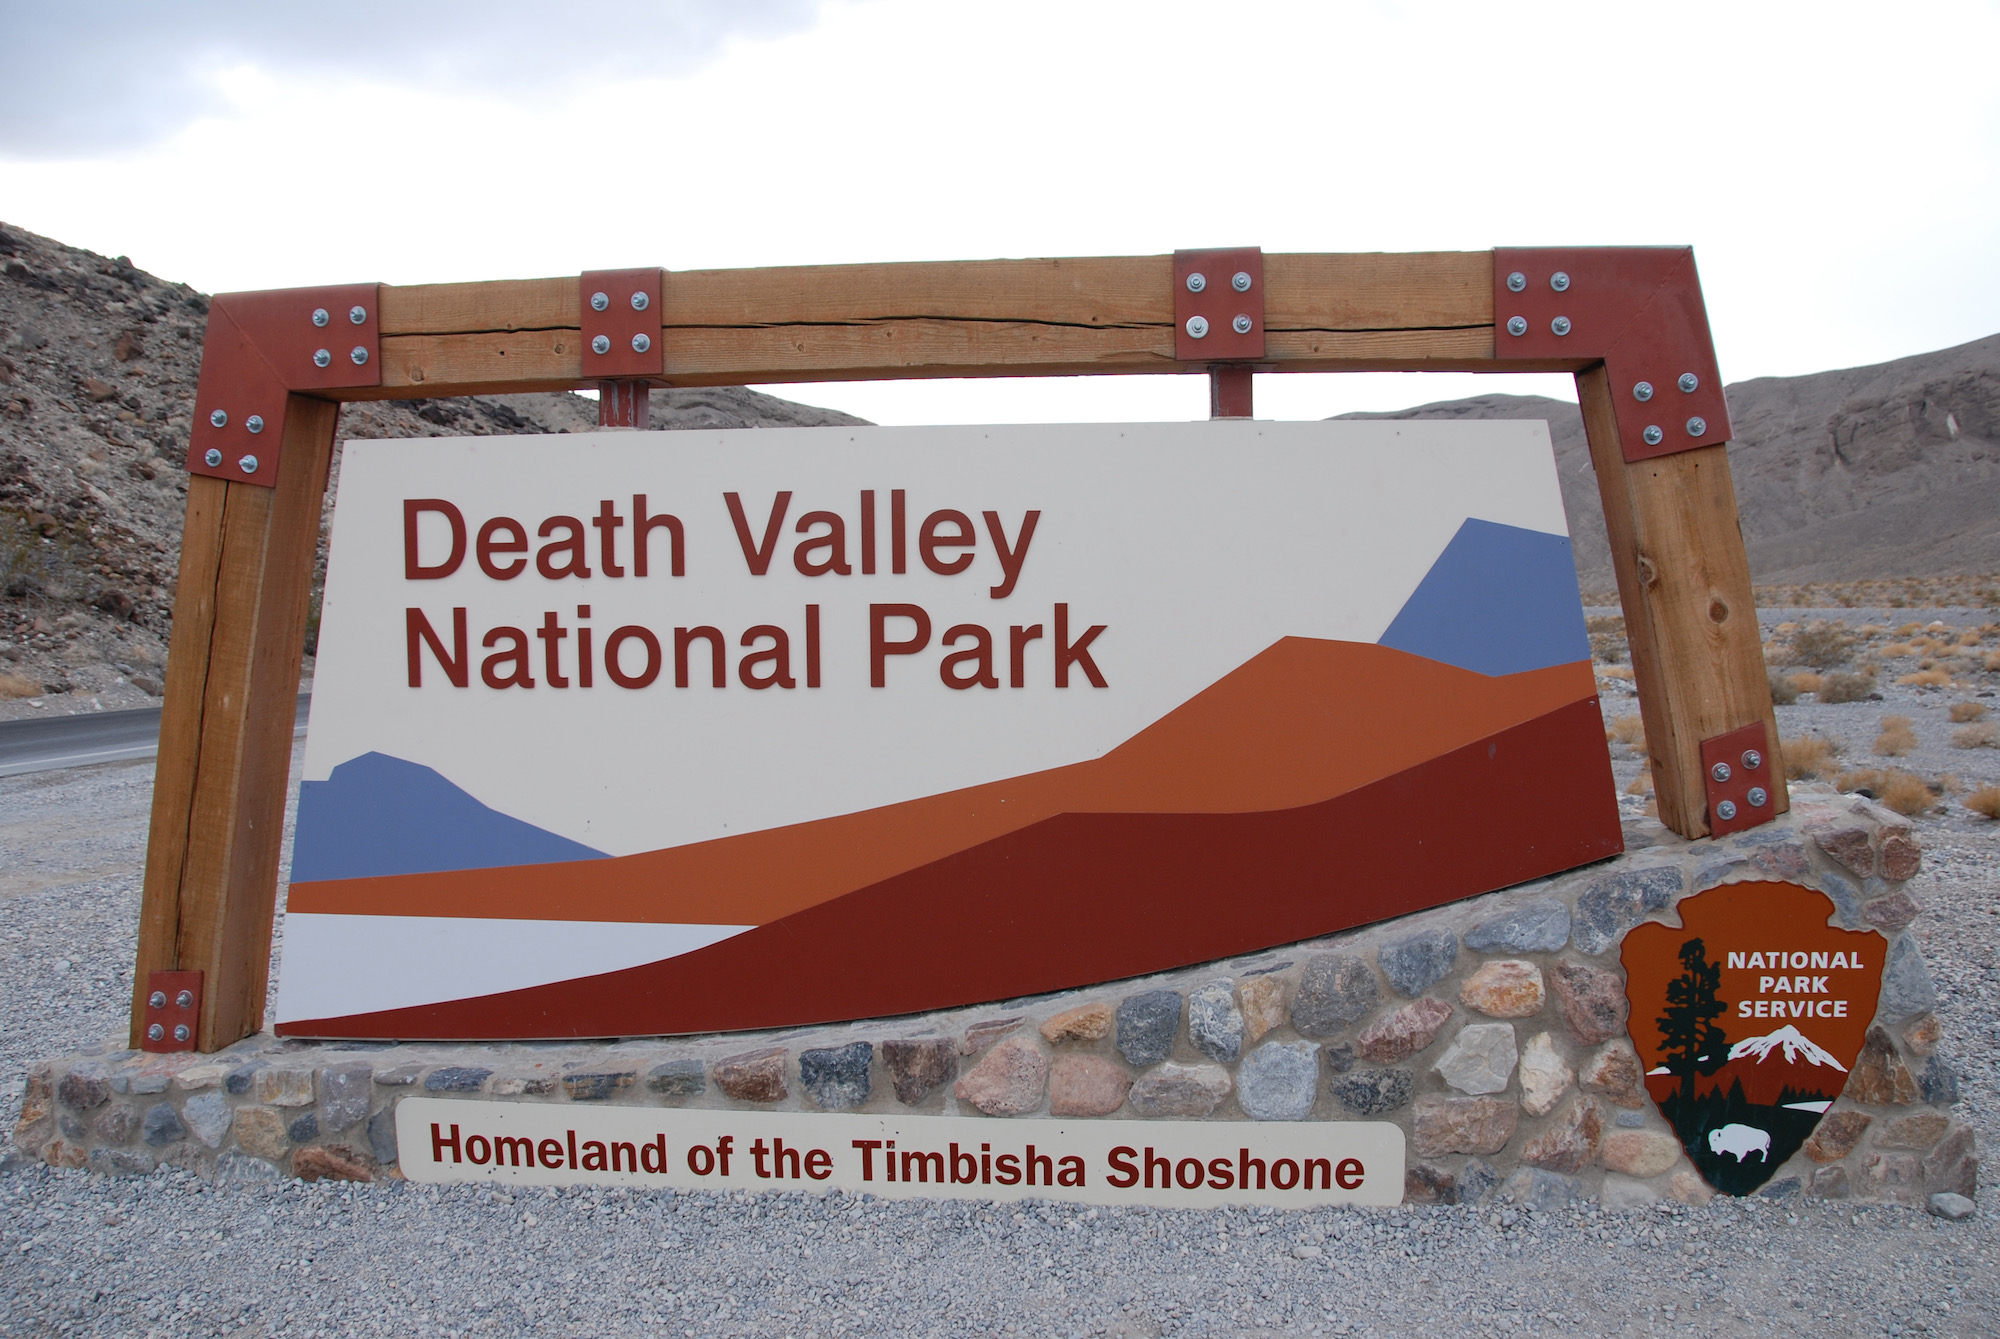 Those 'injuns': Timbisha Shoshone Tribe faces racism in casino bid